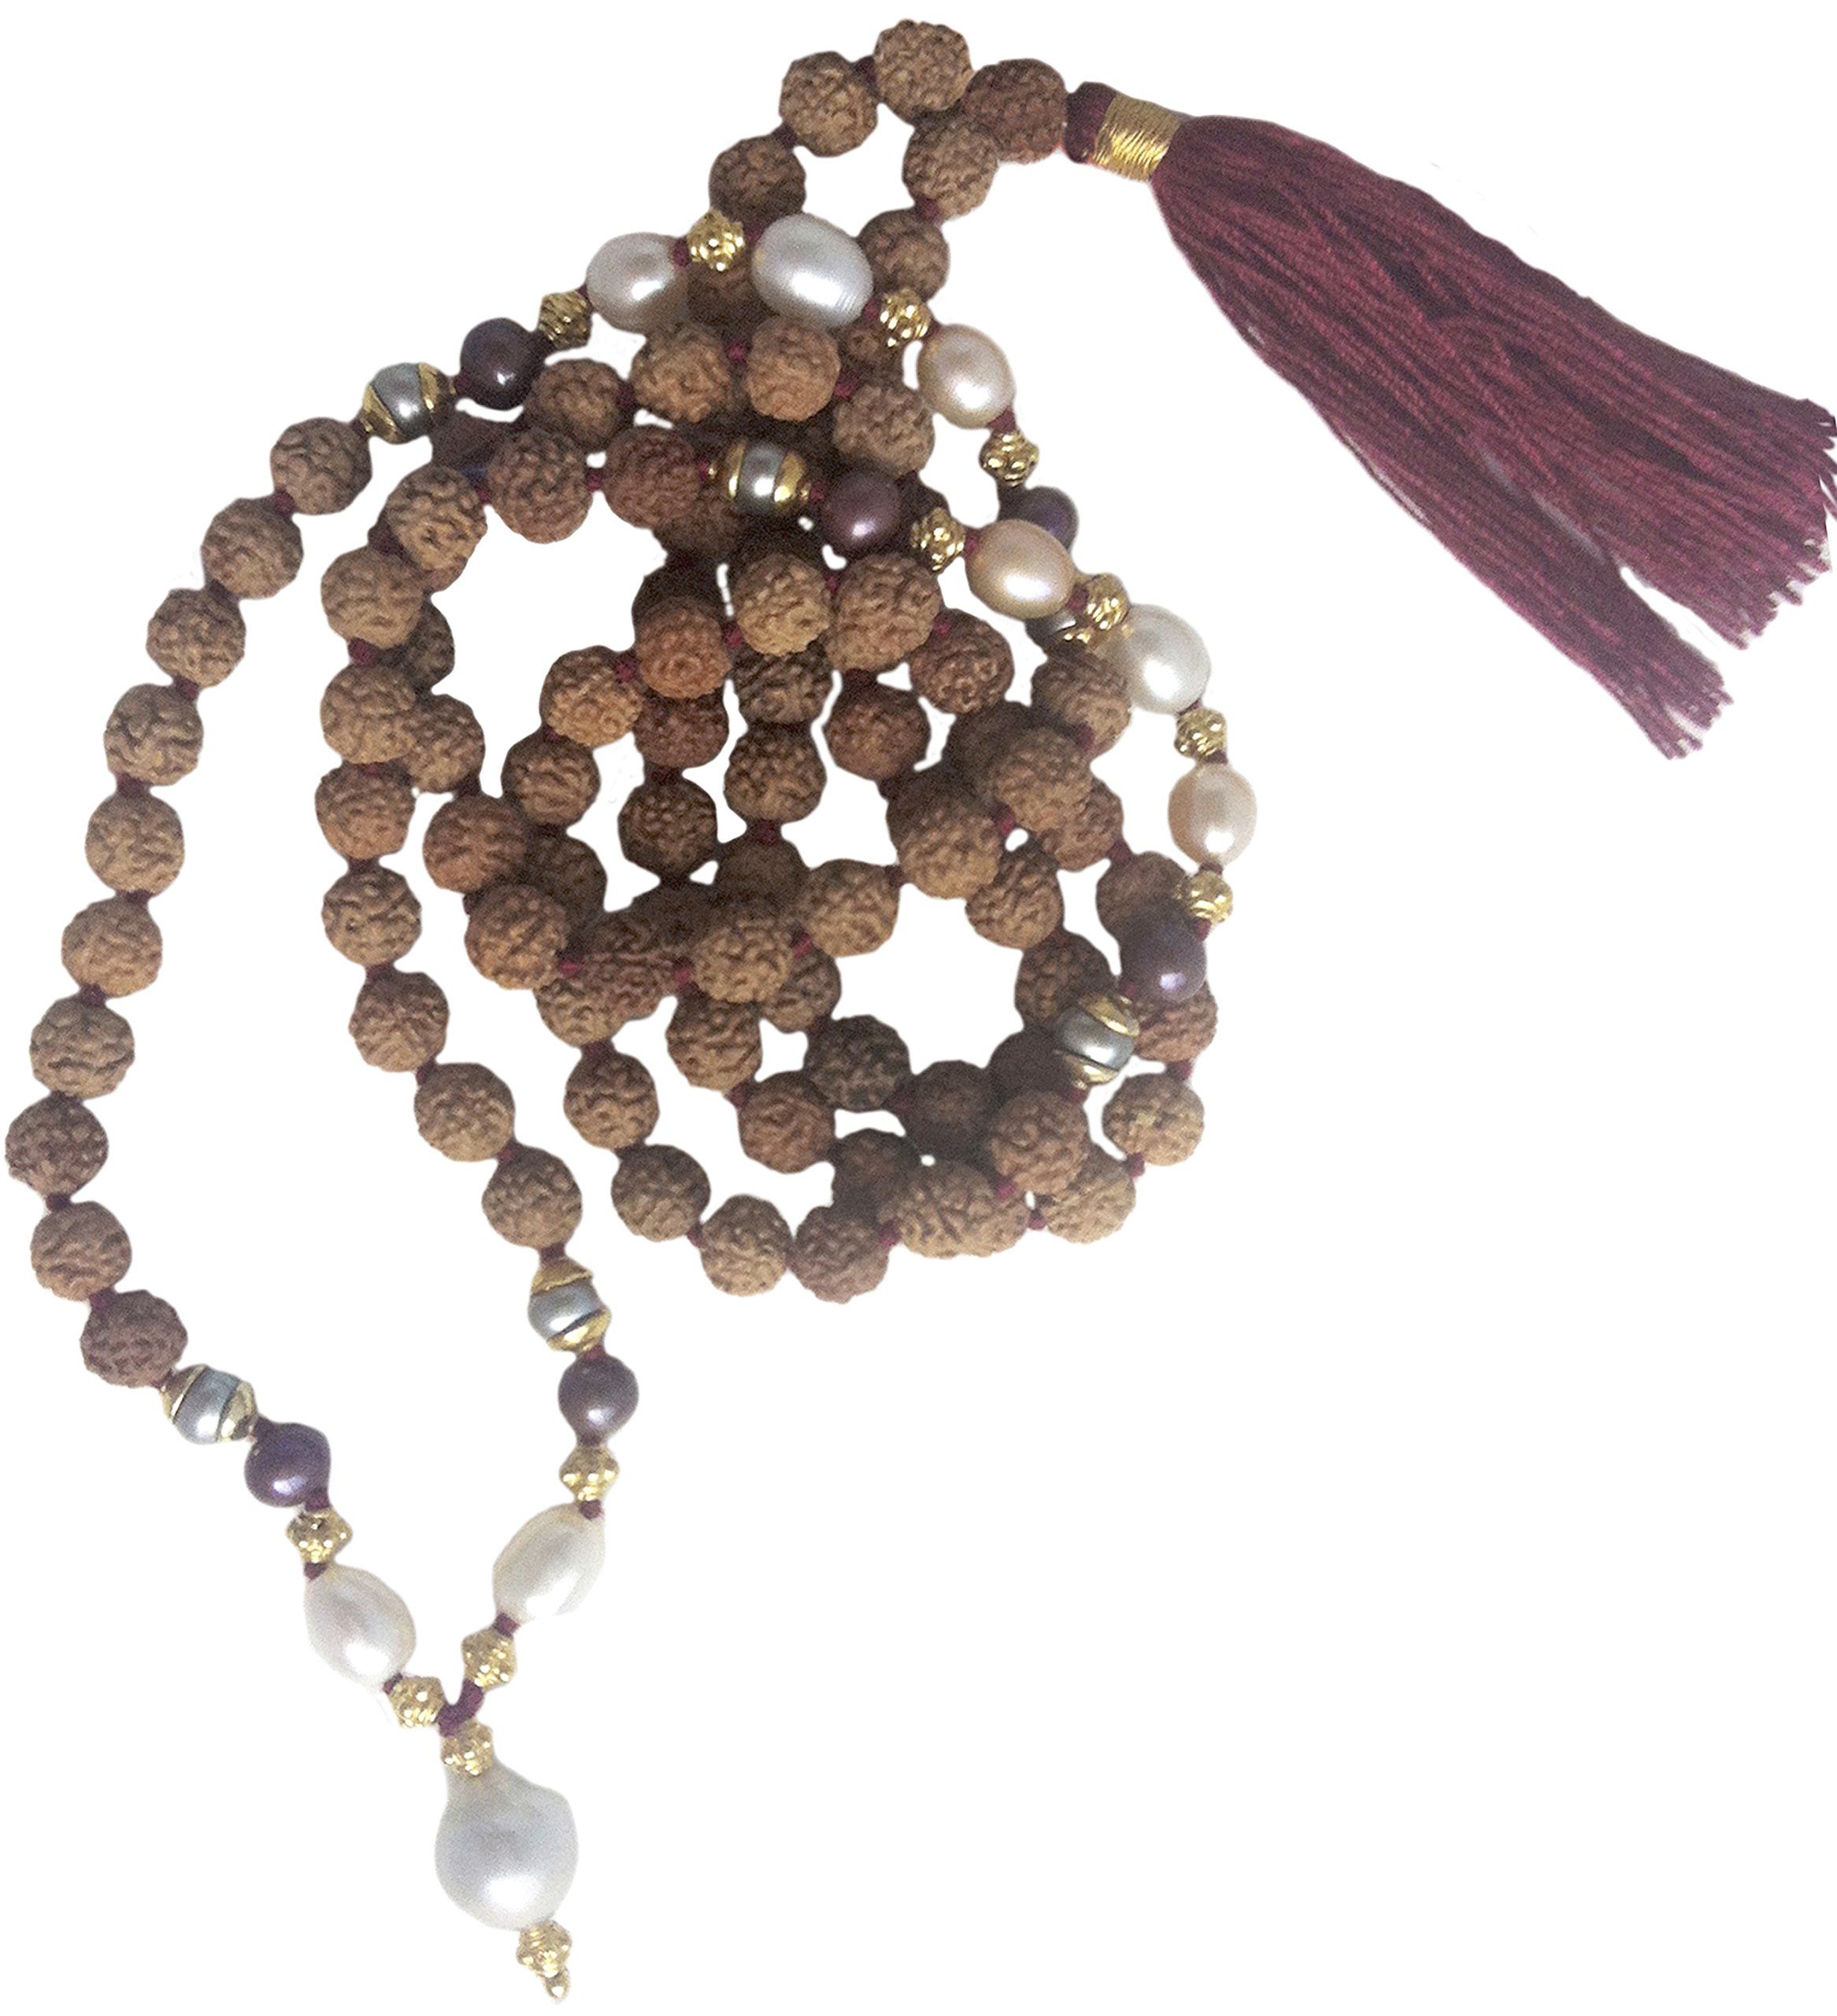 Divine Mother 108 Bead Rudraksha Mala with Black & White Pearl,Gold Plate Accents